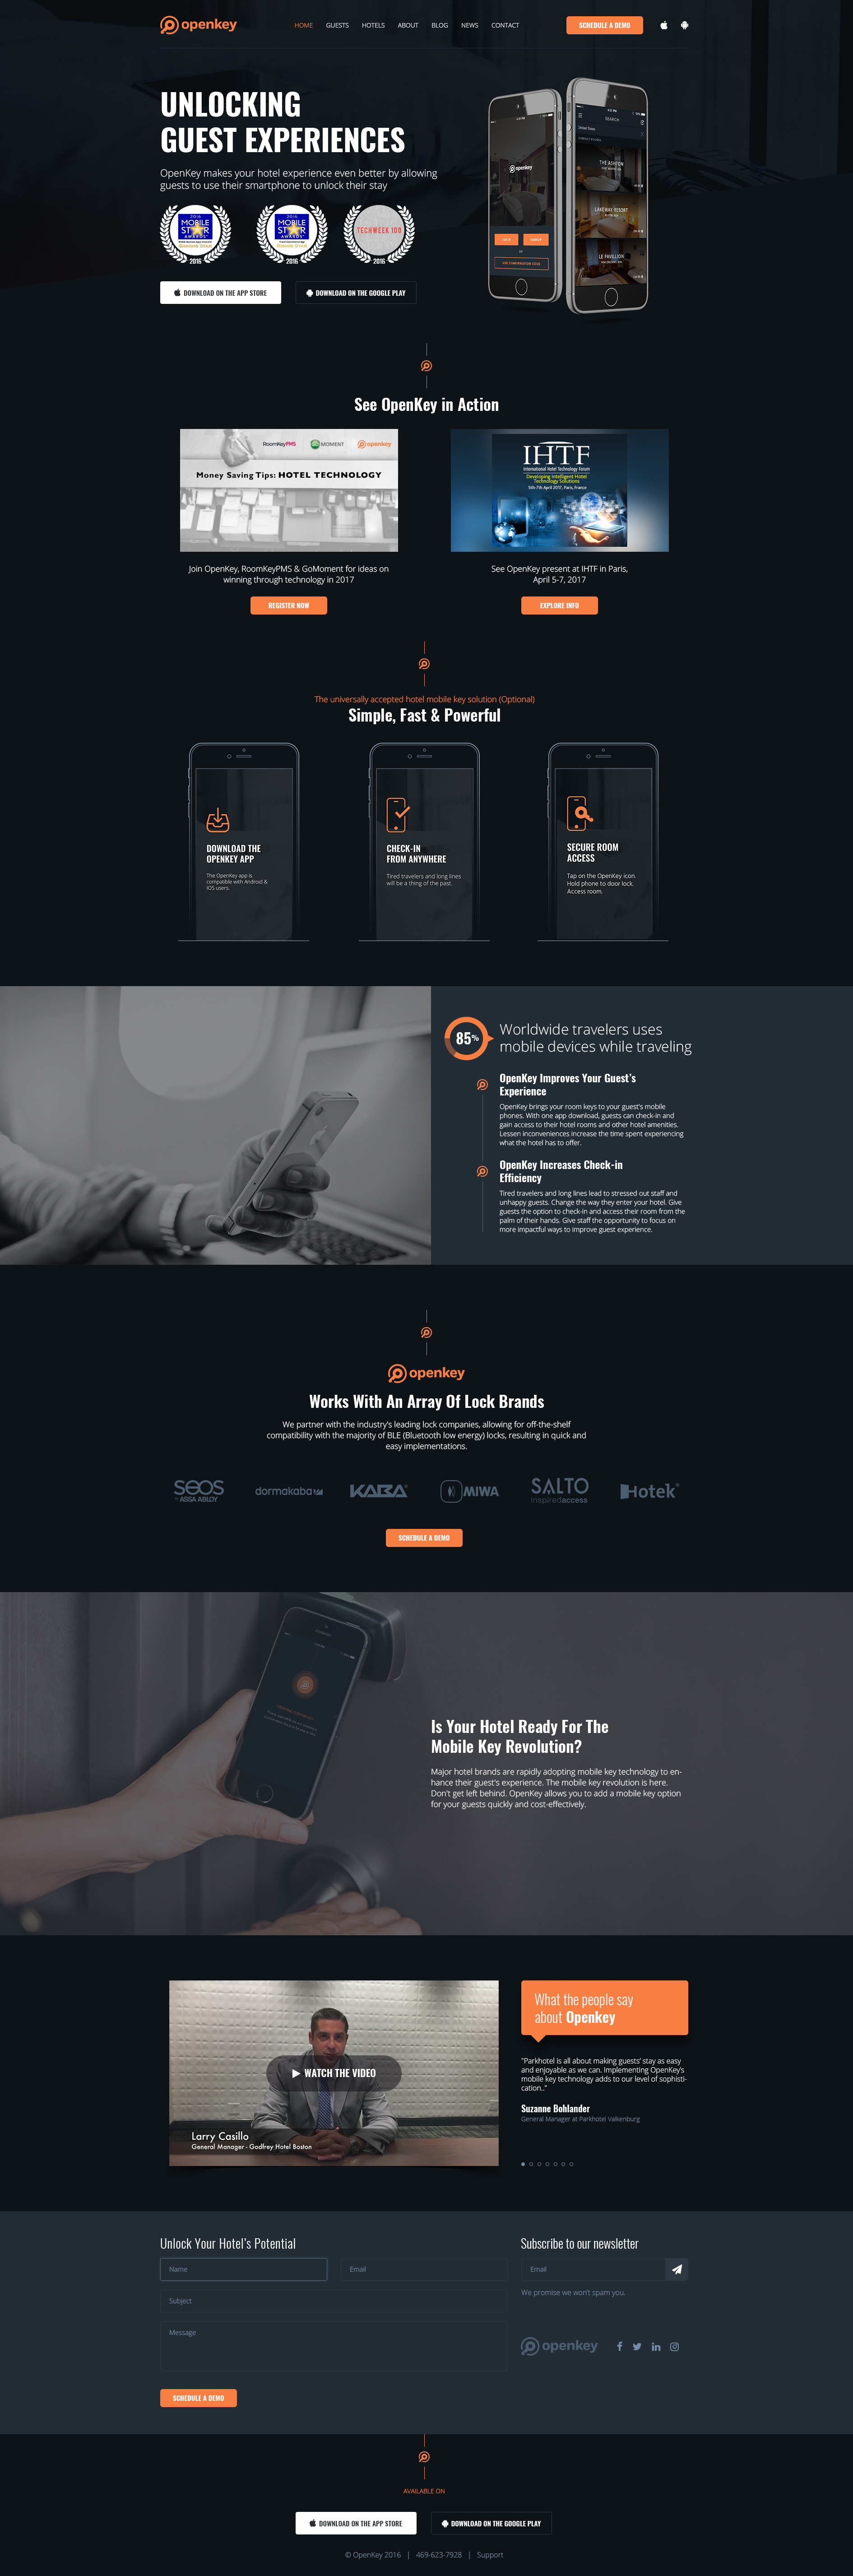 Home Page Design For Openkey by Ajay Mishra - Creative Work